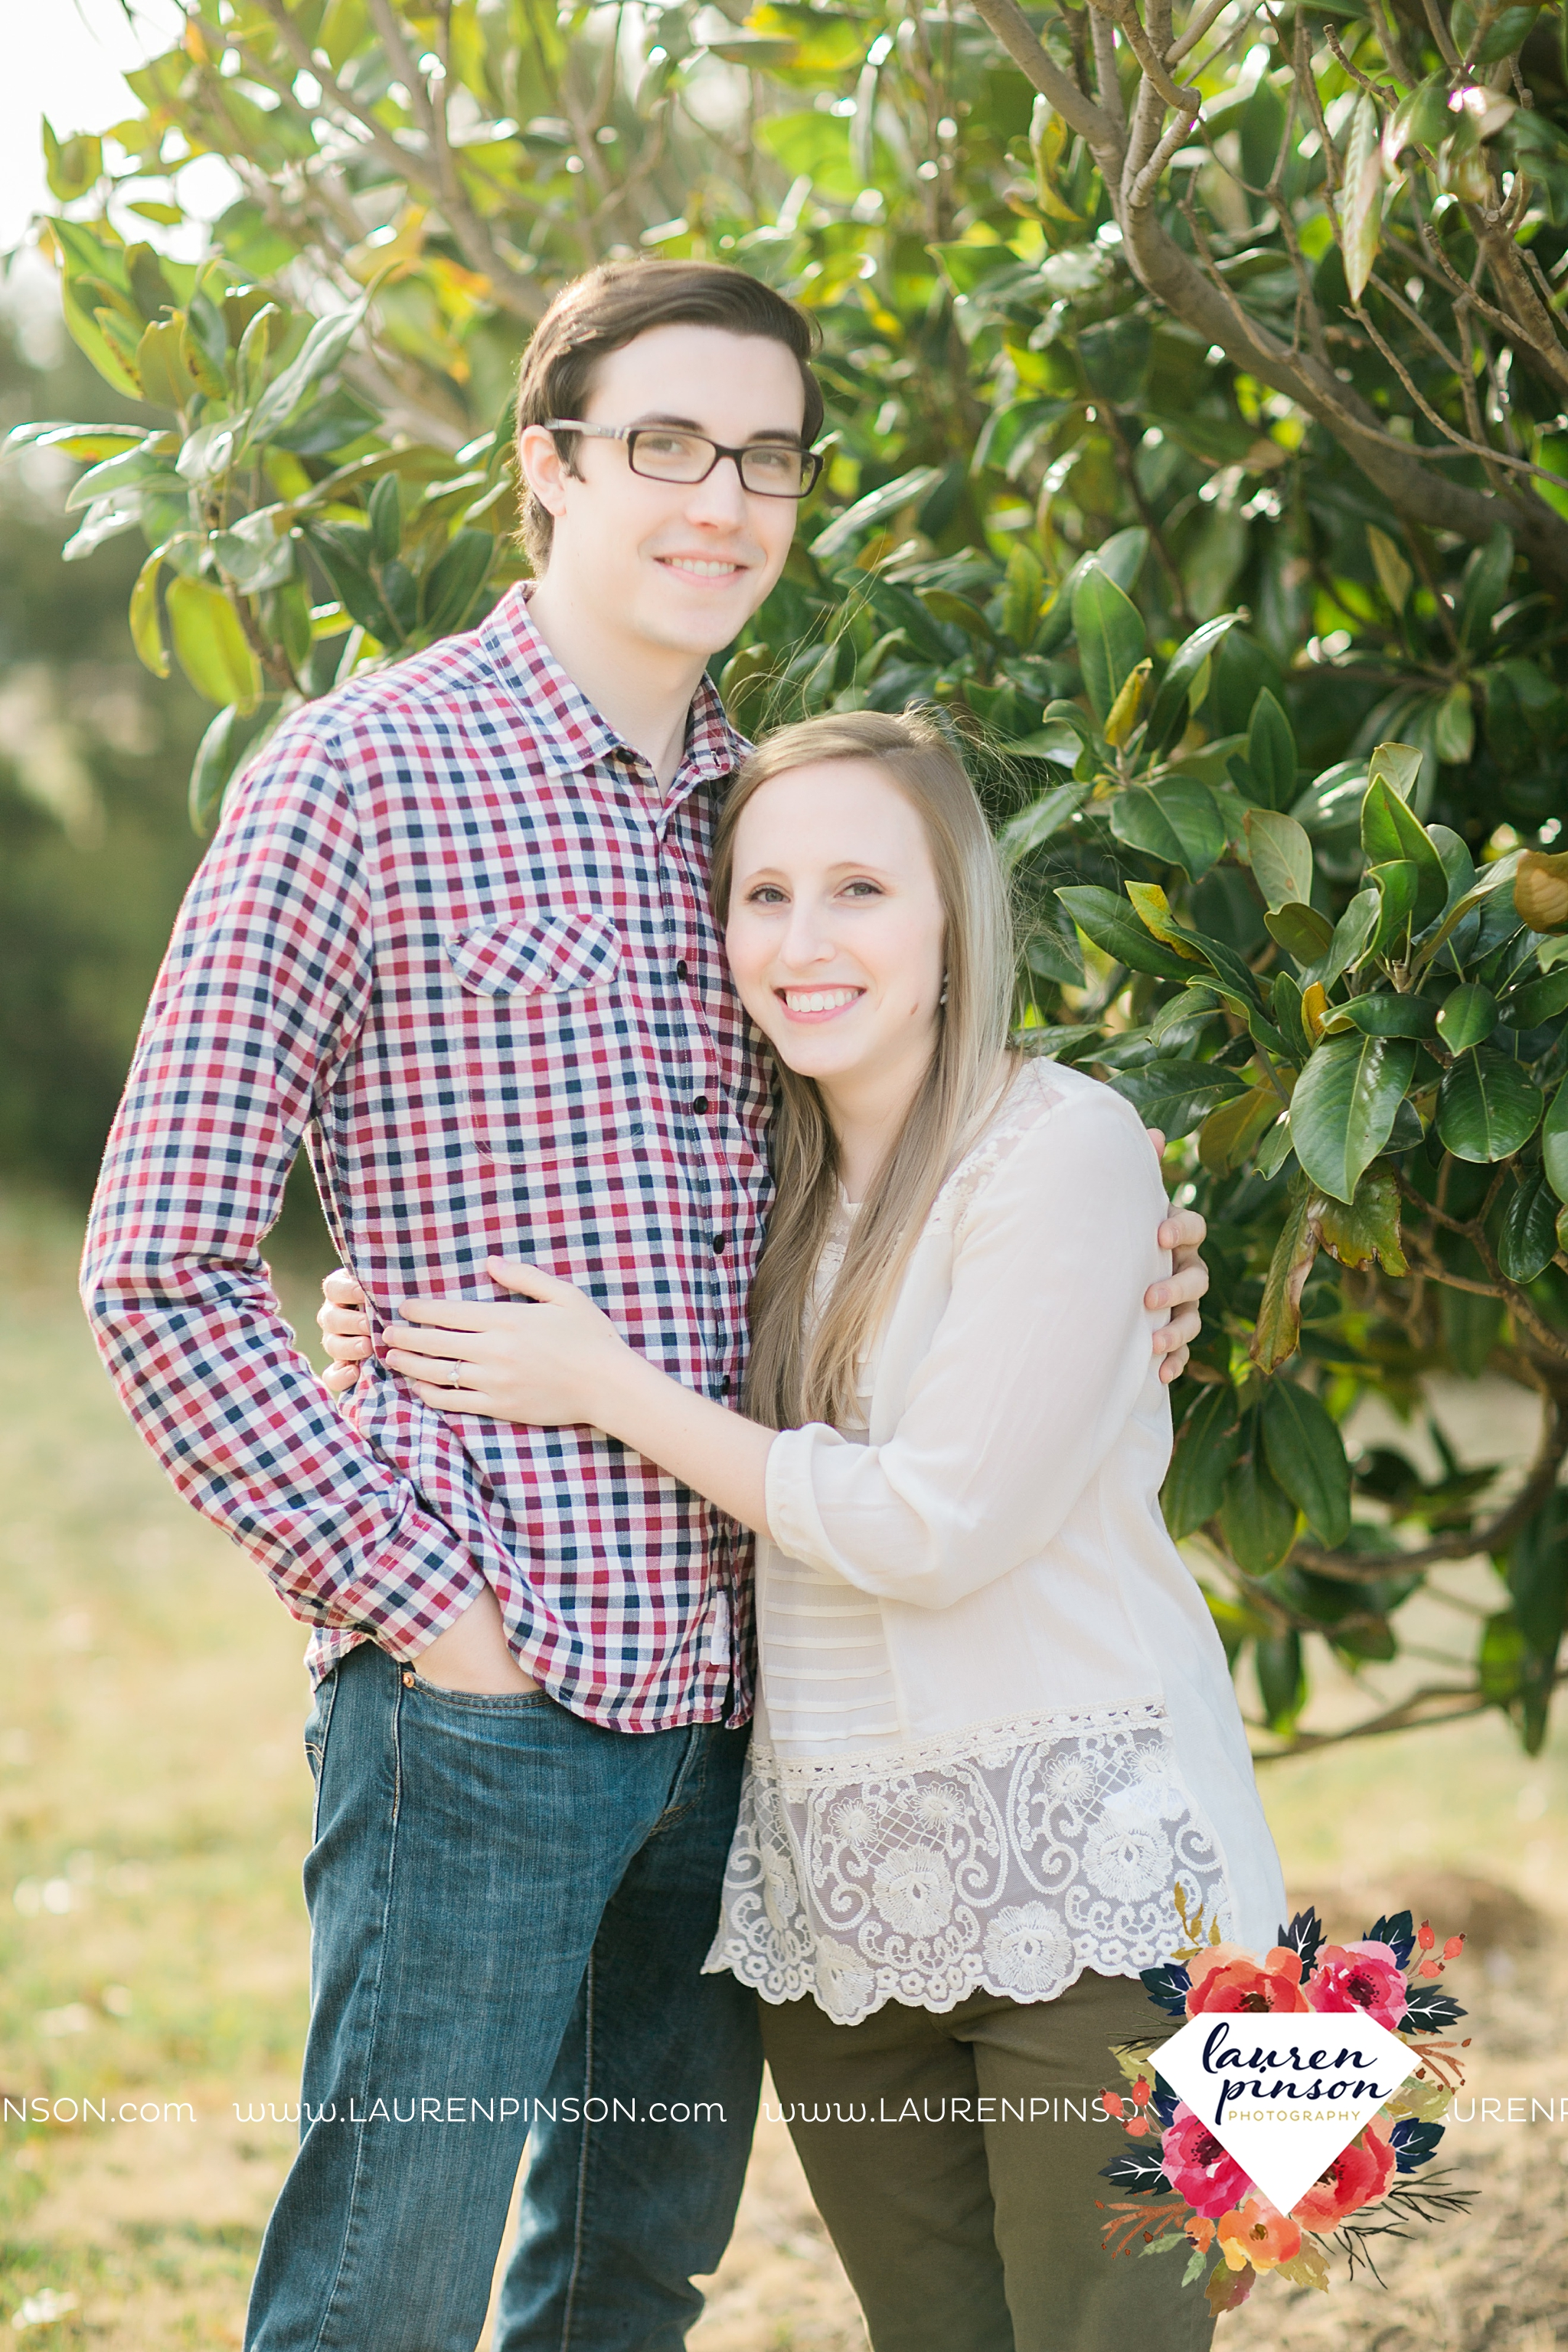 katie-and-joshua-frank-and-joes-wichita-falls-engagement-session-lake-wichita-park-lauren-pinson-photography-00014.jpg